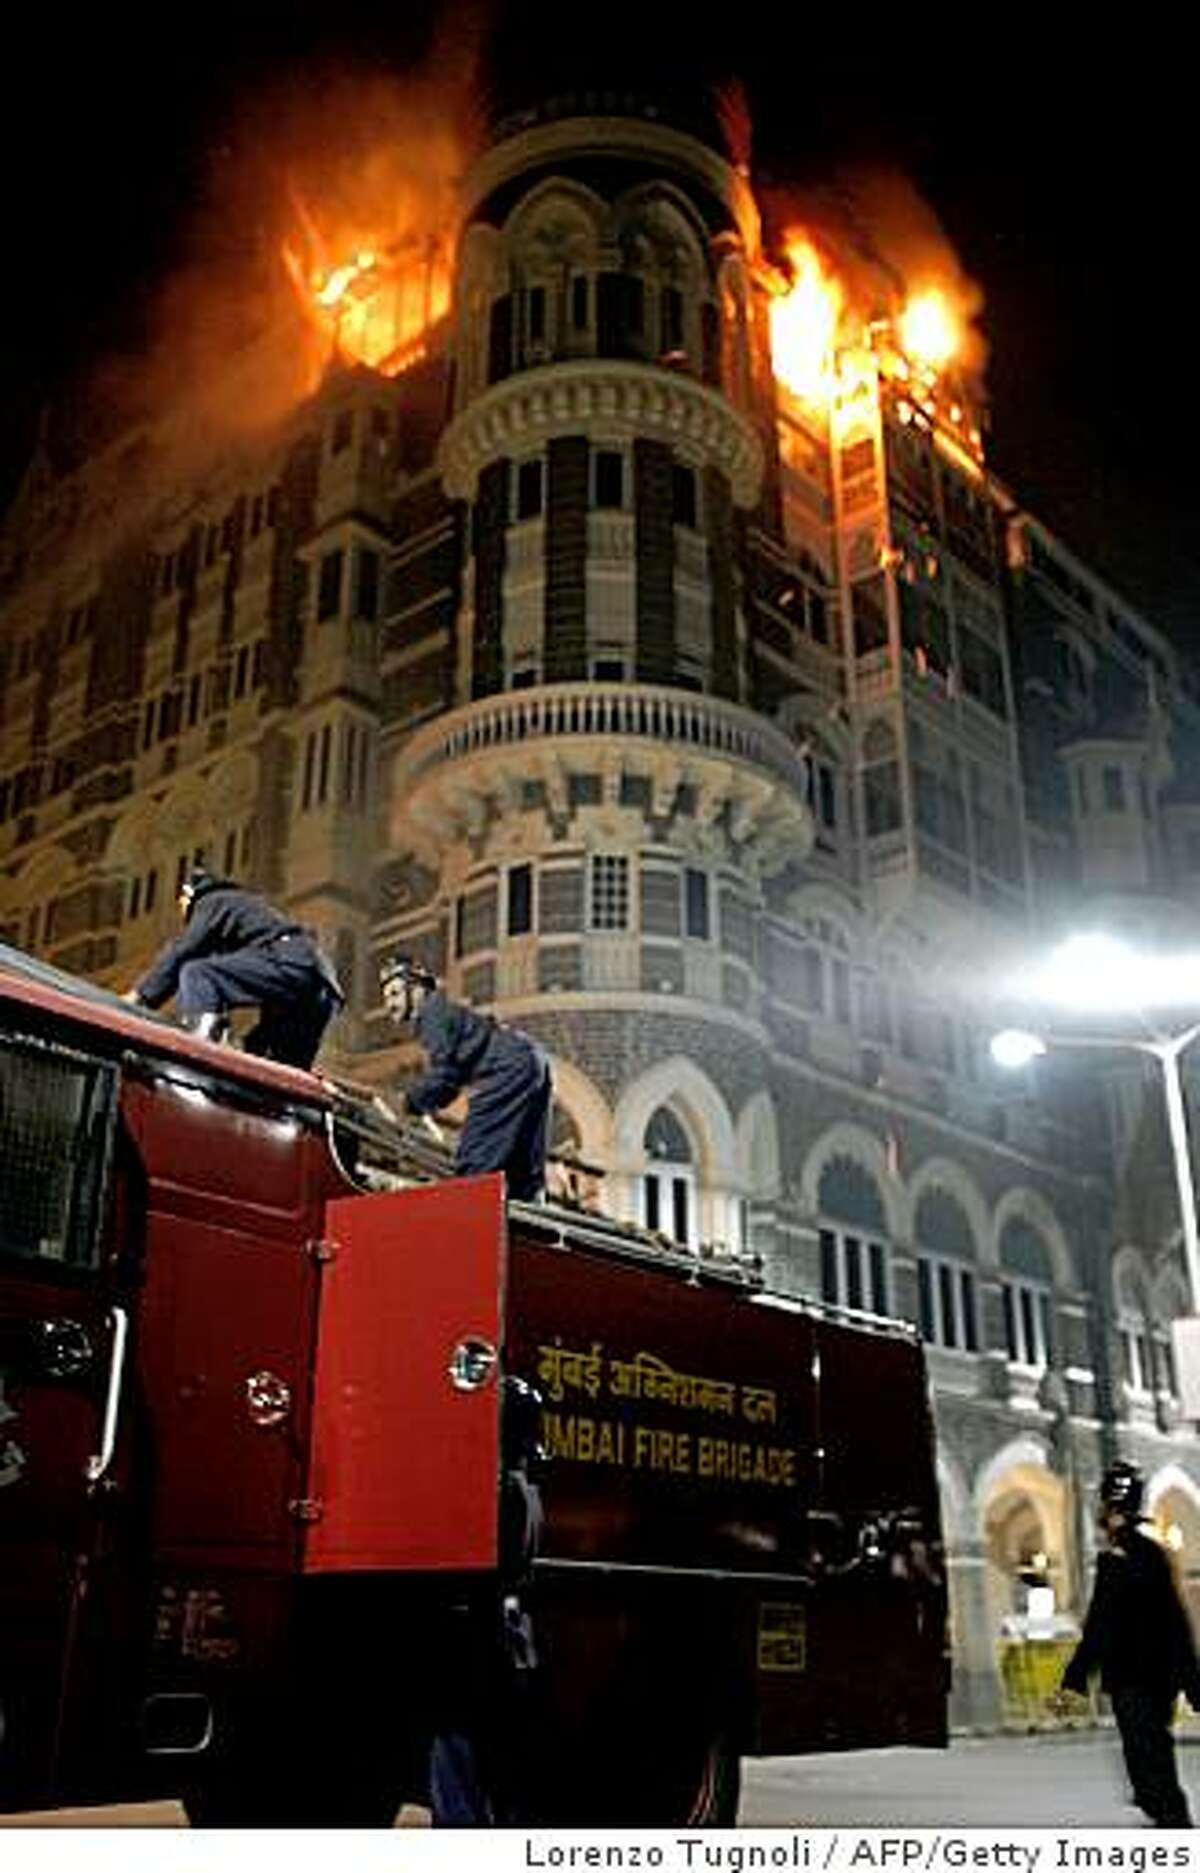 Fire brigade personel arrive as fire engulfs the top floor of the Taj Mahal hotel, site of one of the shootouts with terrorists during a in Mumbai on late November 26, 2008. Nearly 80 people were killed and an estimated 200 to 350 injured in a series of coordinated attacks in the Indian city of Mumbai late November 26, as heavily armed Islamist militants hit two luxury hotels and took foreign guests hostage. AFP PHOTO/ Lorenzo TUGNOLI (Photo credit should read LORENZO TUGNOLI/AFP/Getty Images)